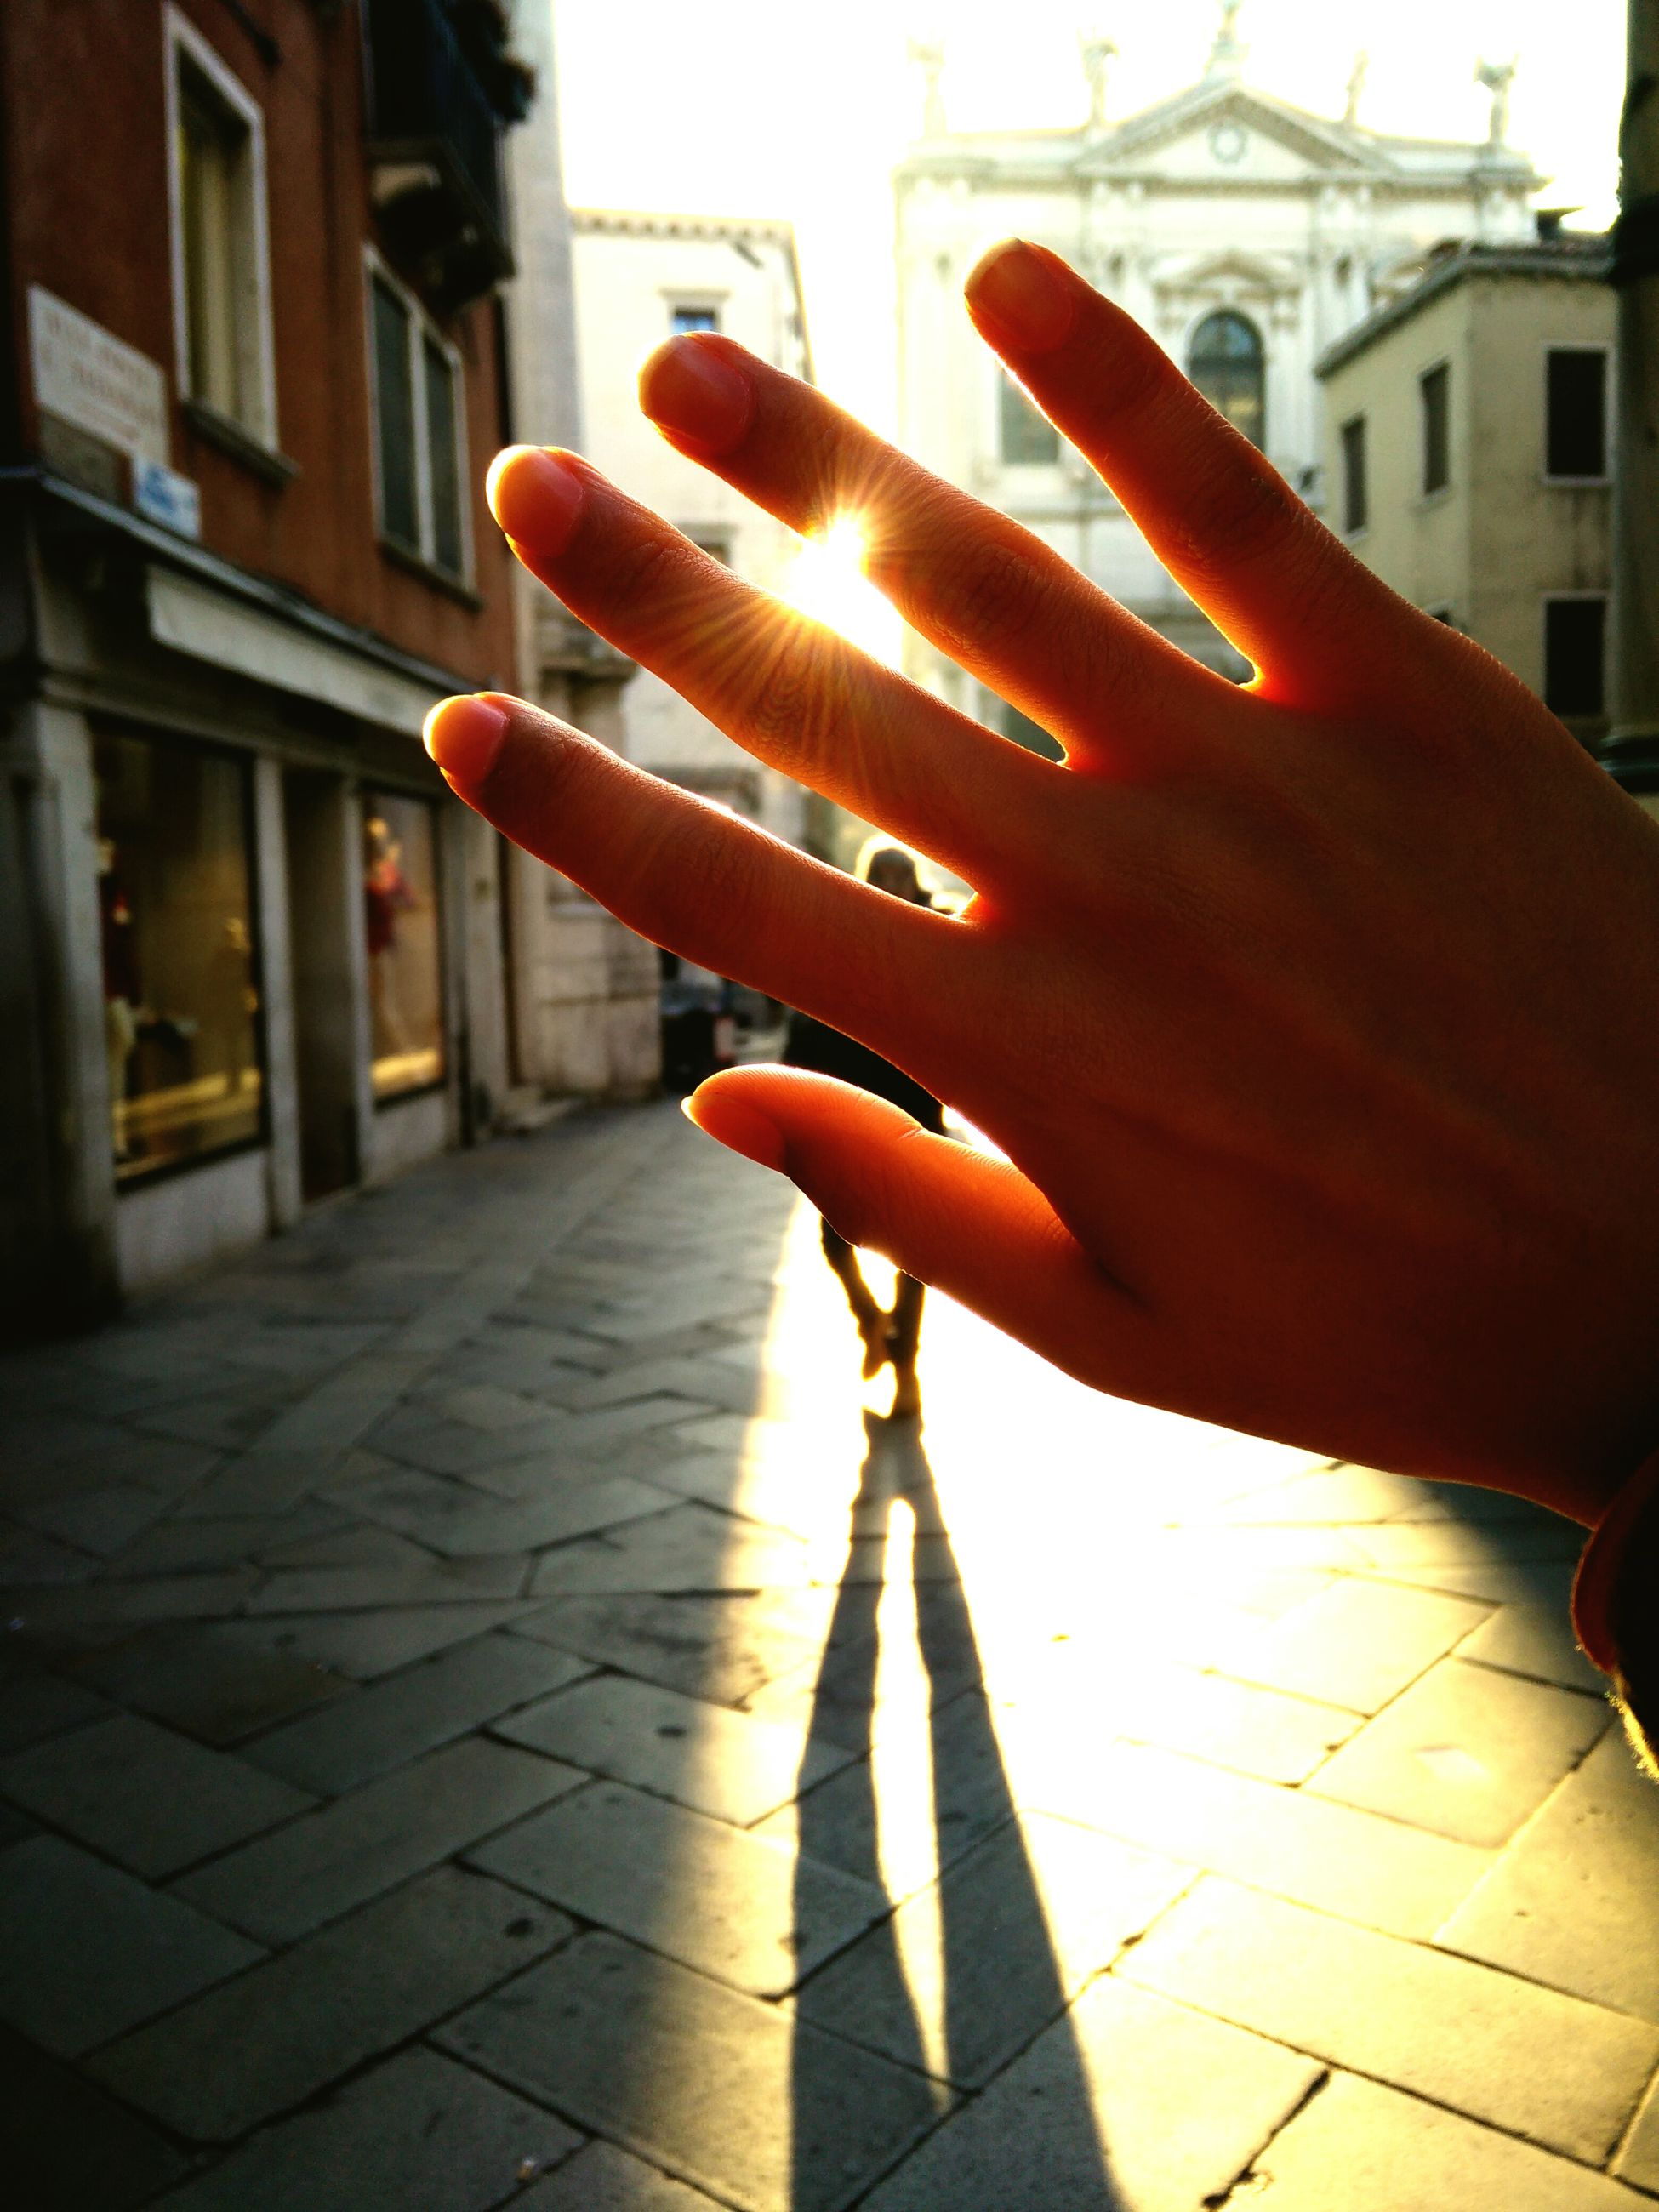 person, building exterior, architecture, built structure, lifestyles, men, street, holding, unrecognizable person, part of, cropped, leisure activity, orange color, sunlight, city, human finger